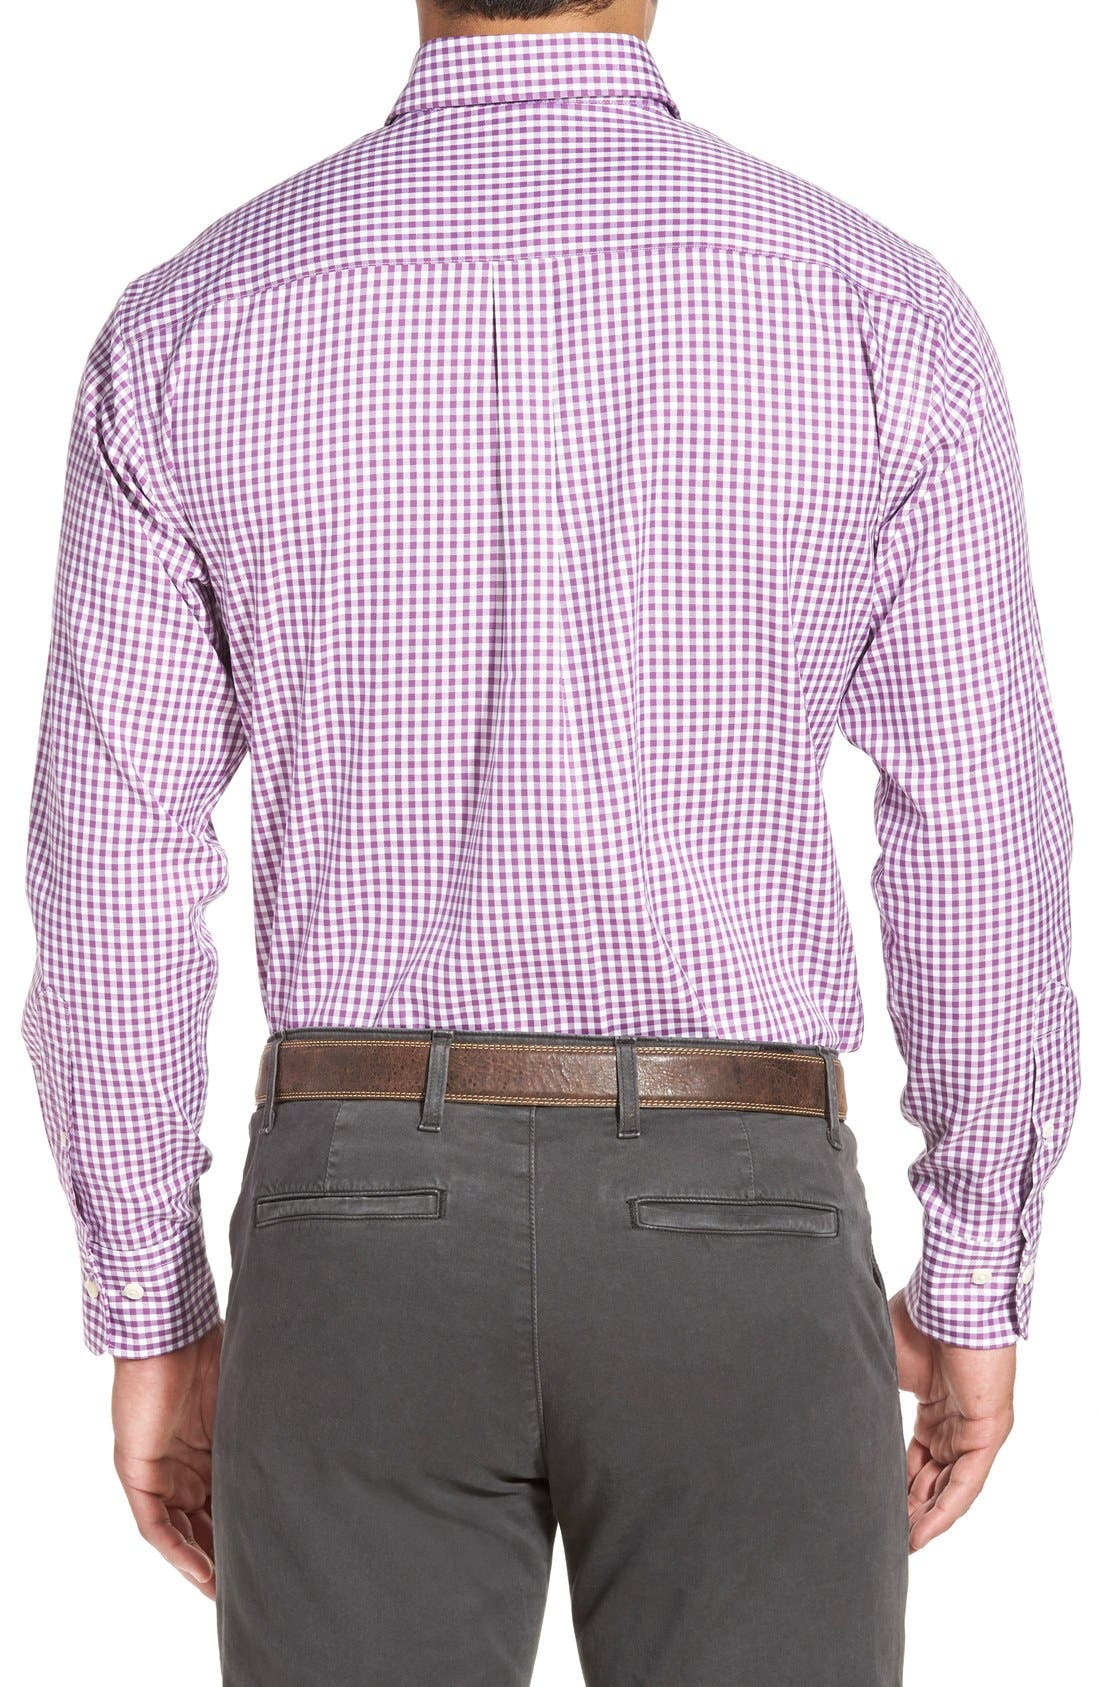 Alternate Image 3  - Peter Millar 'Nanoluxe' Regular Fit Wrinkle Resistant Twill Check Sport Shirt